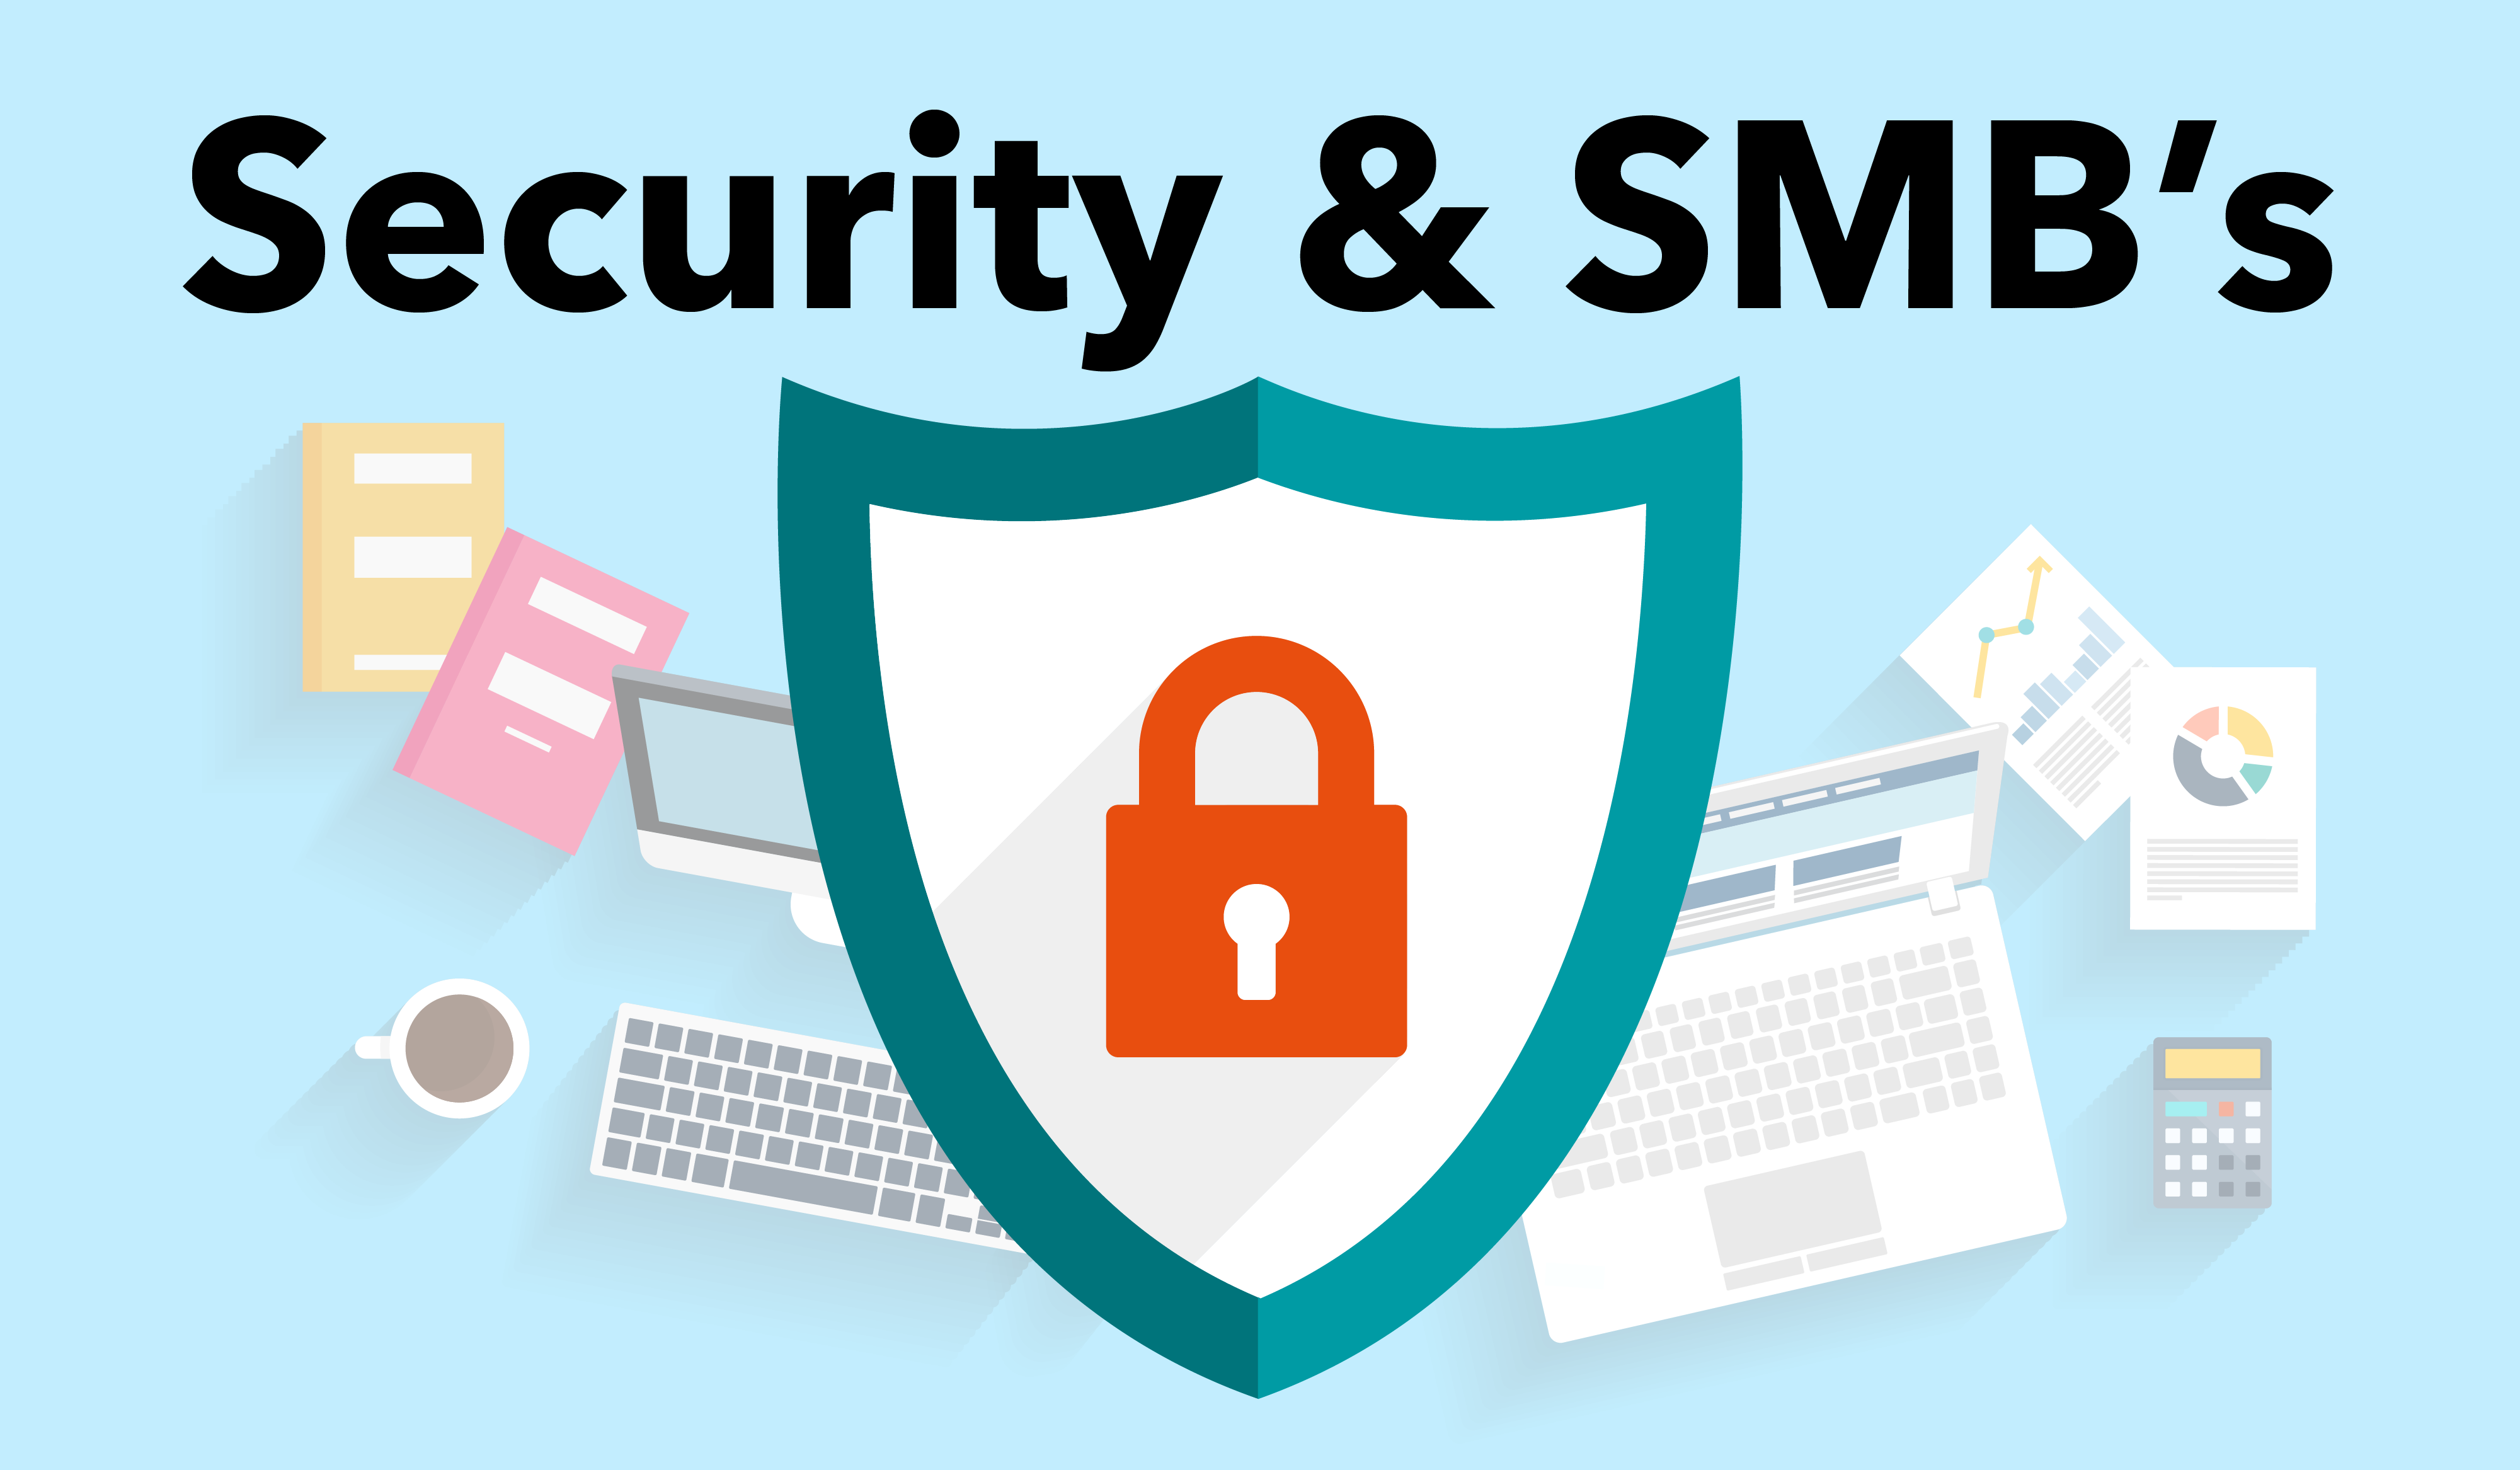 Information Security and SMB's: Training a Security Mindset